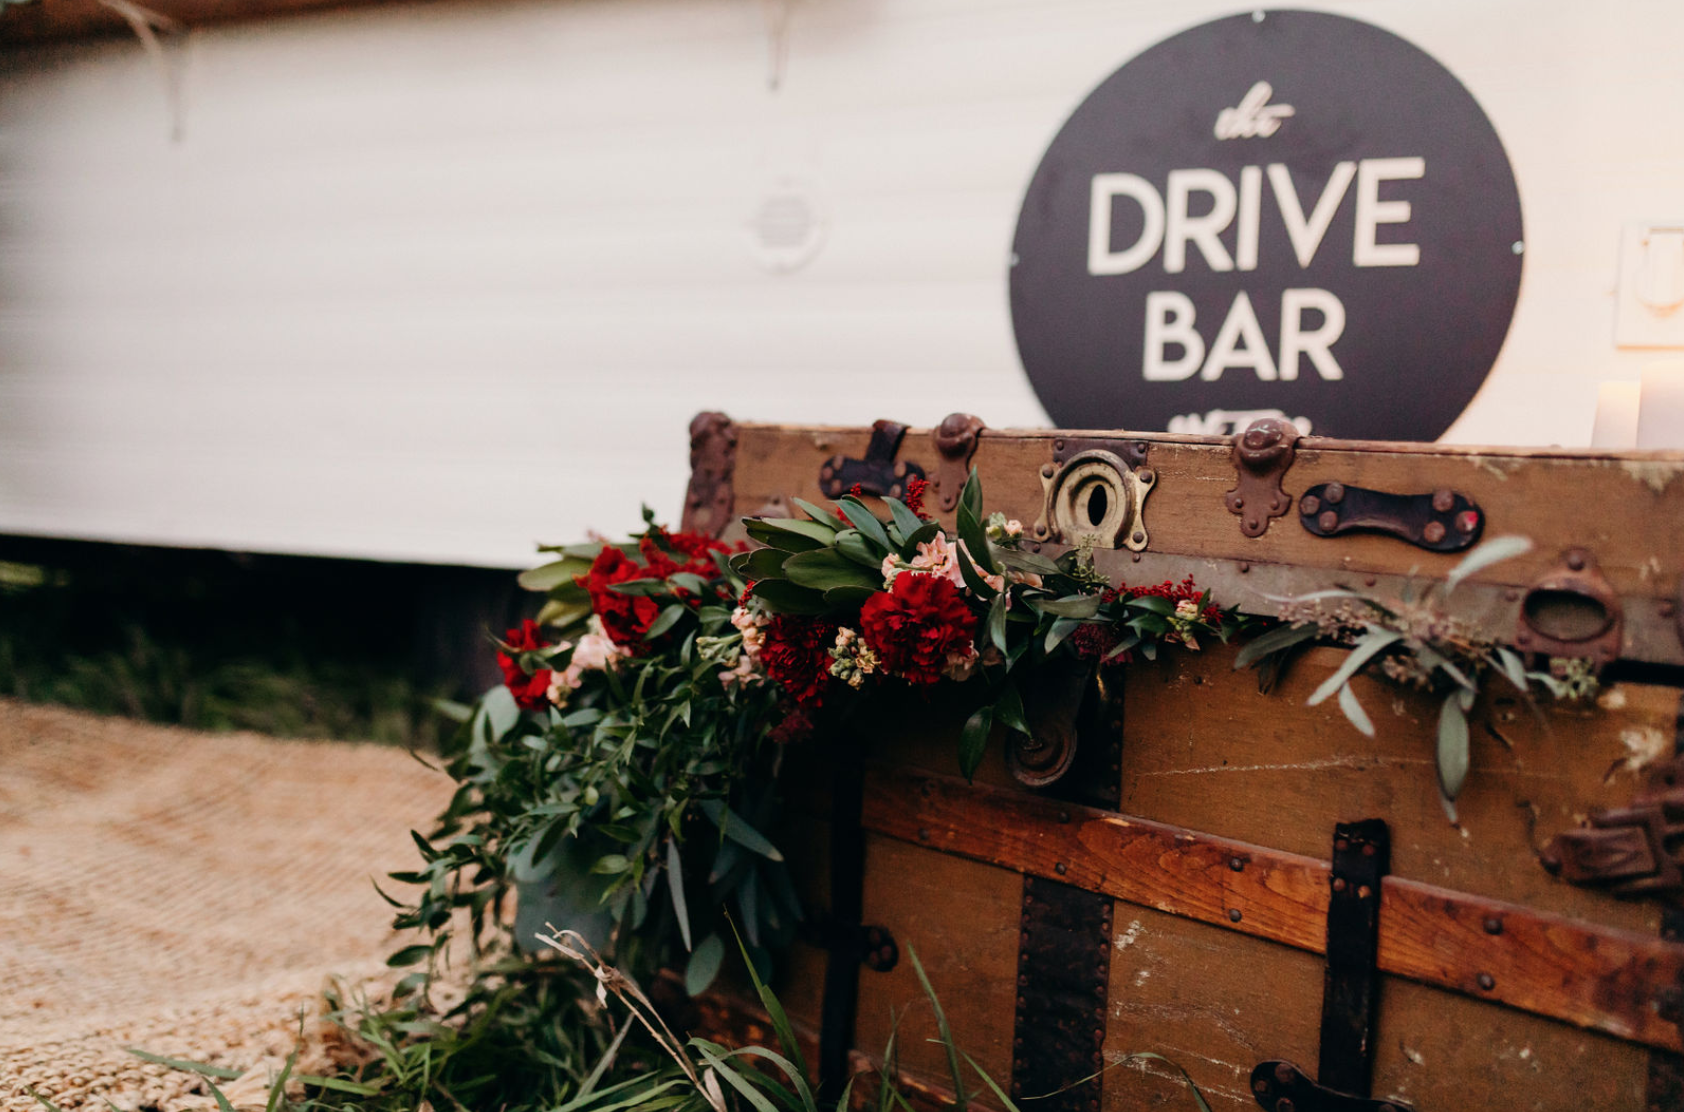 THE DRIVE BAR - Omaha's First Vintage Mobile Bar!